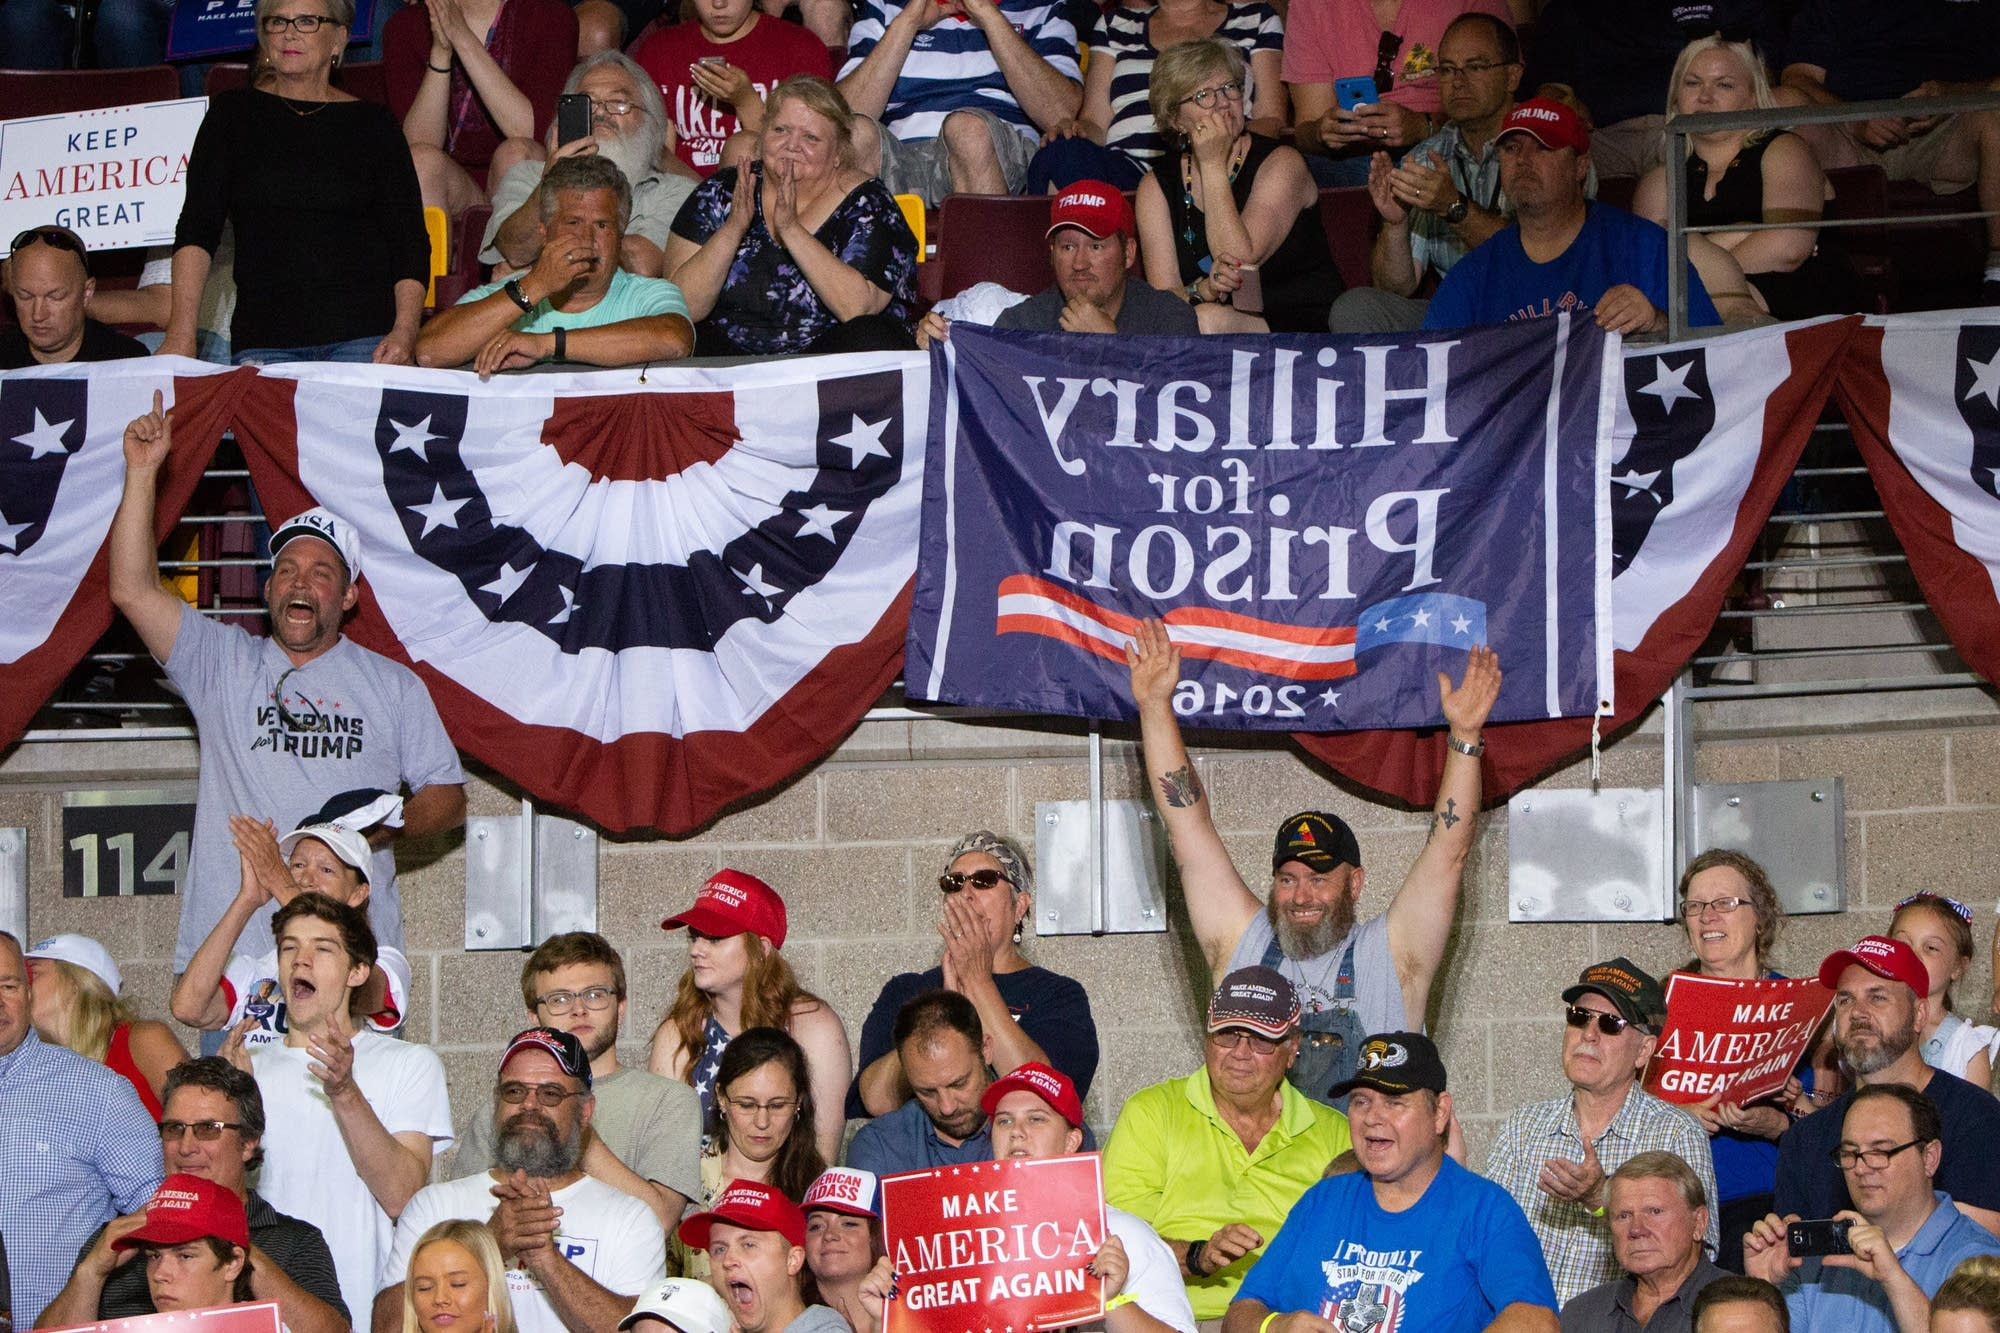 Supporters of President Trump cheer in the stands of Amsoil Arena.